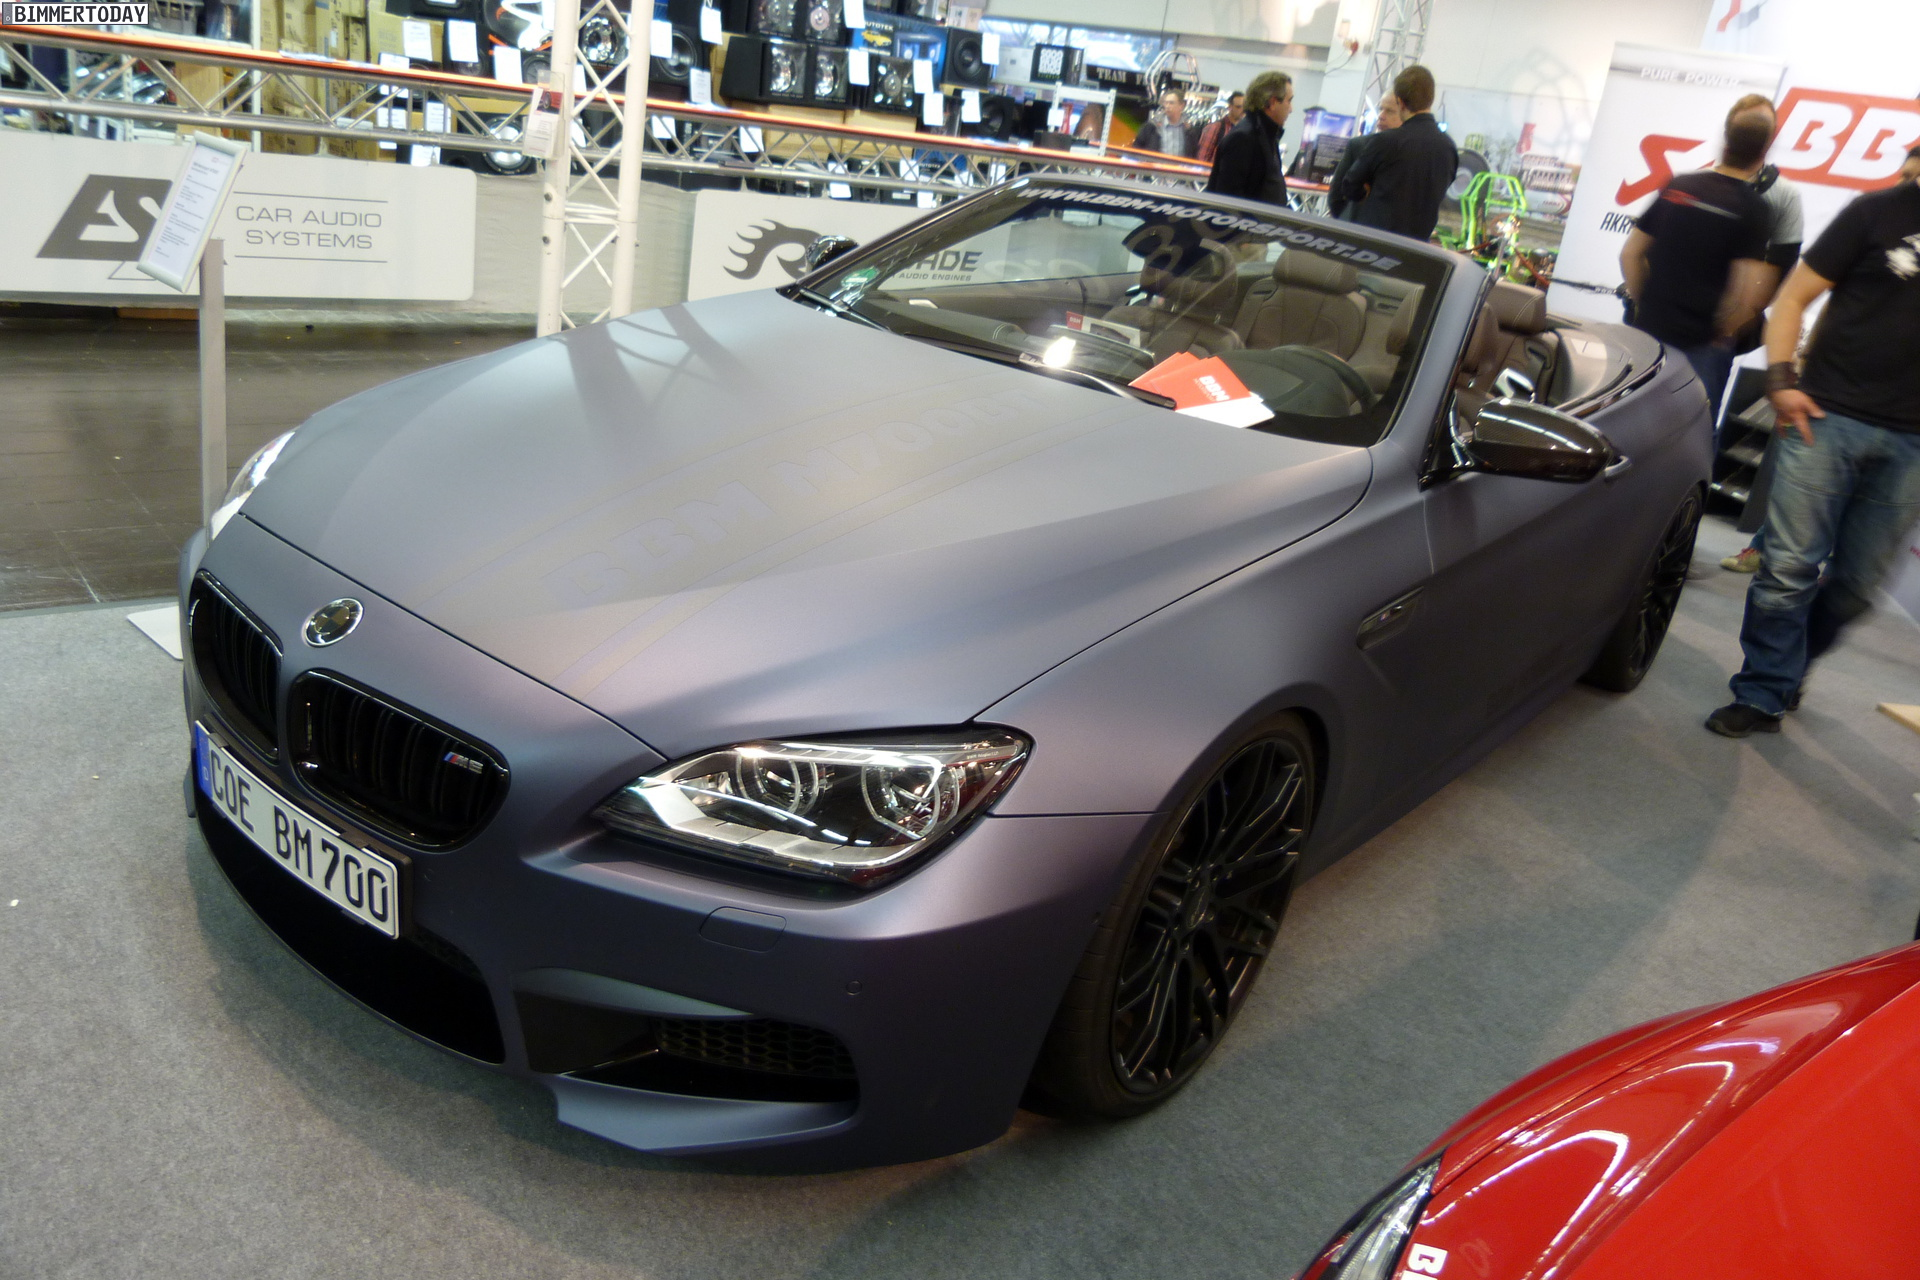 2013 Essen Motor Show Bbm Bmw M6 Convertible With Power Tune To 705 Hp